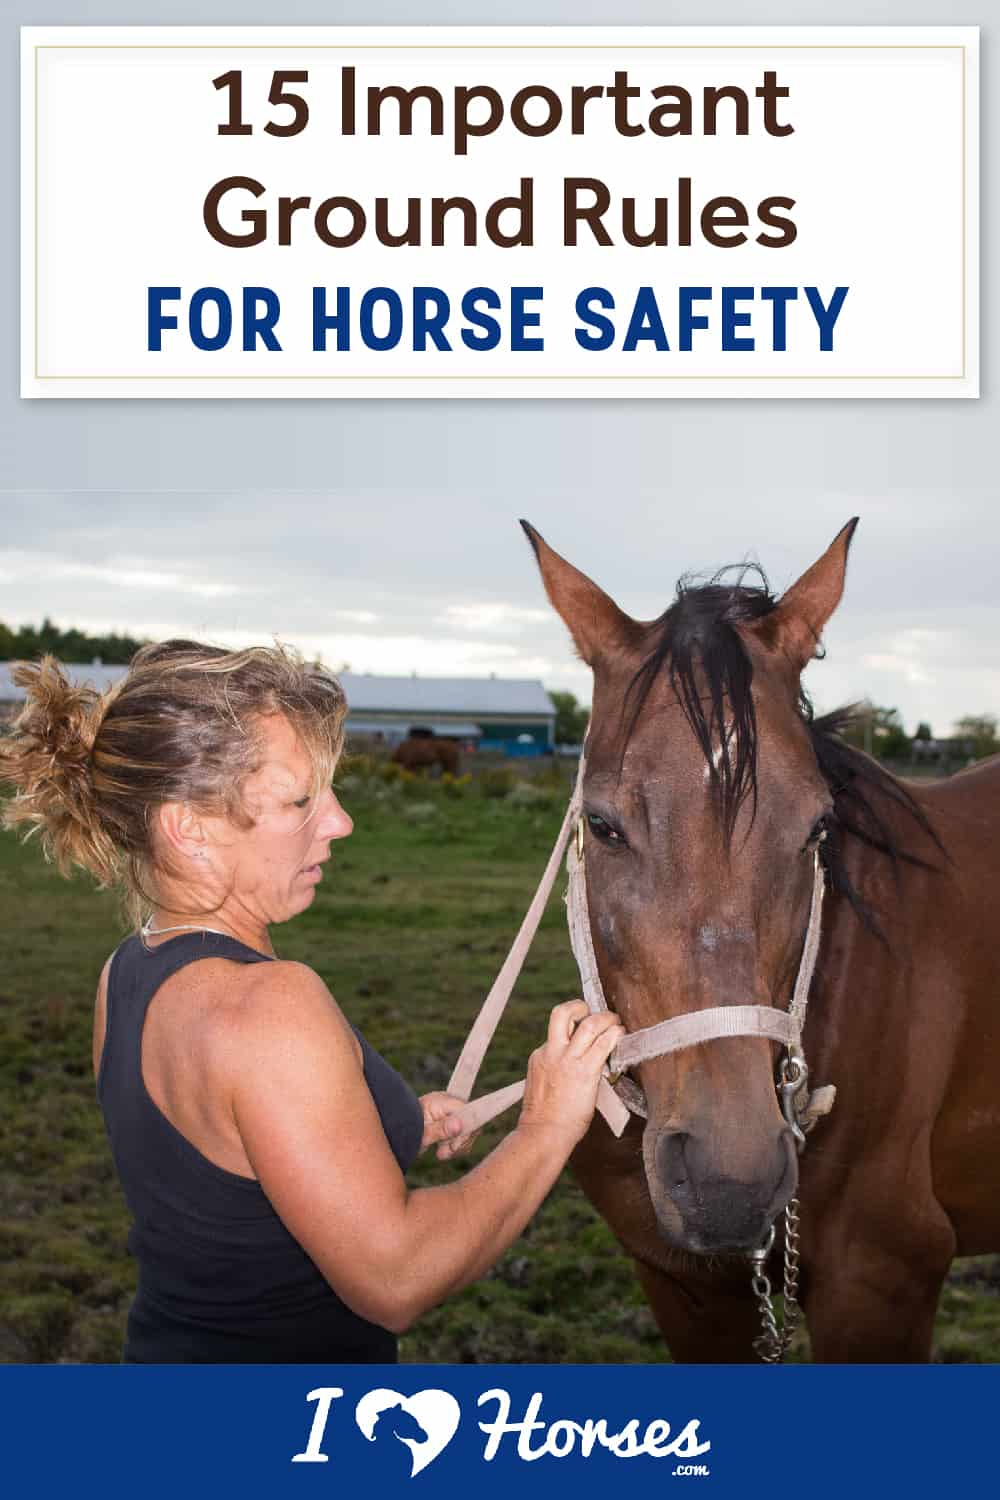 15 Important Ground Rules For Horse Safety